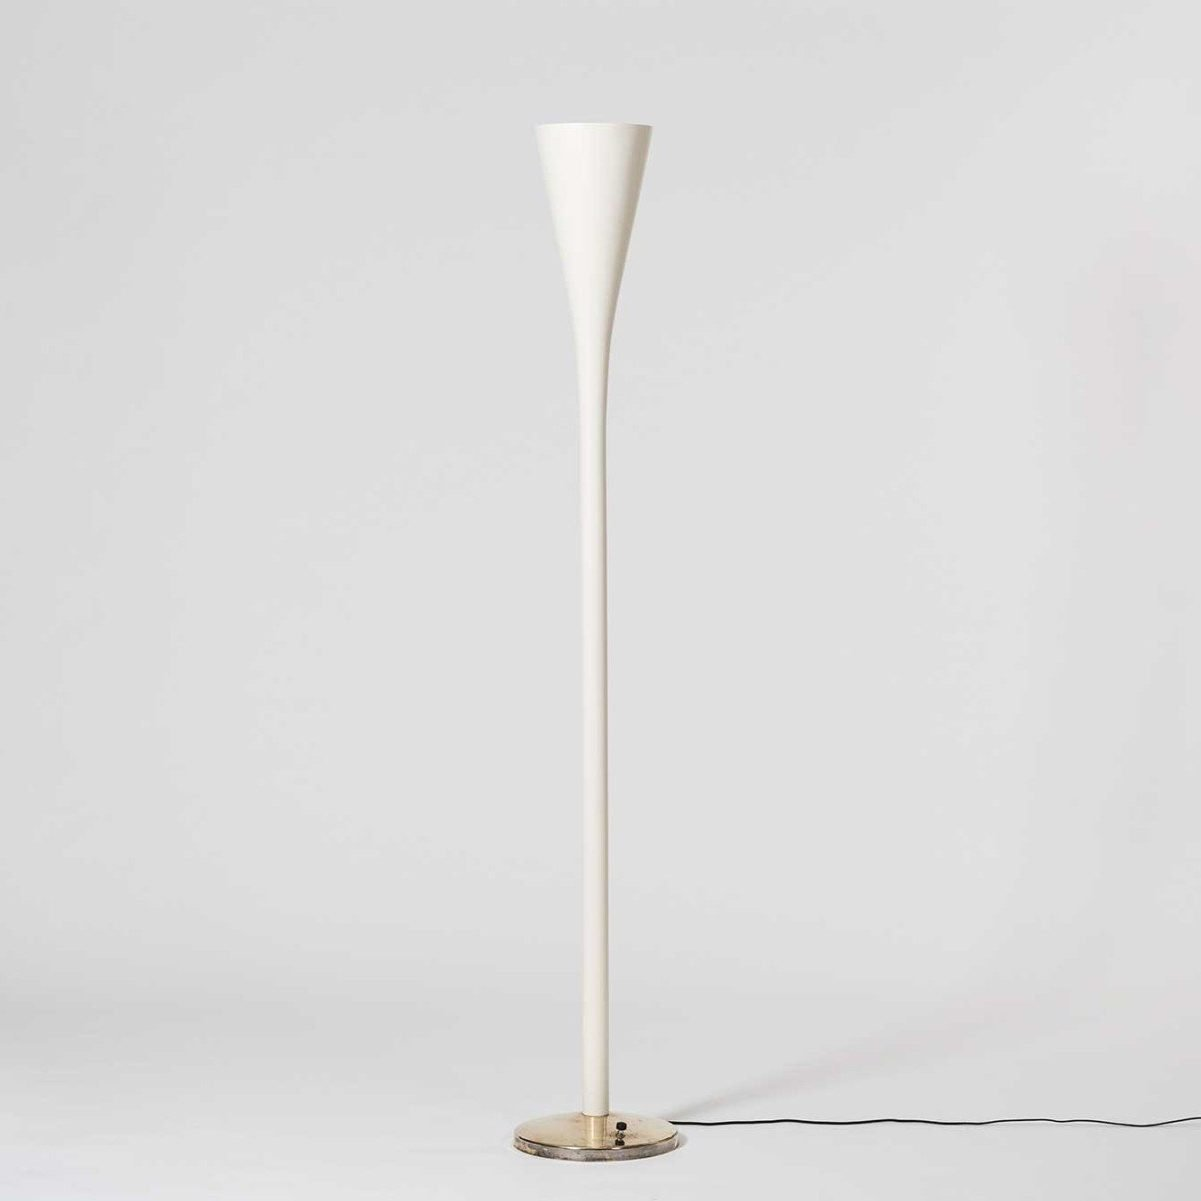 Pietro Chiesa |  Luminator - floor light